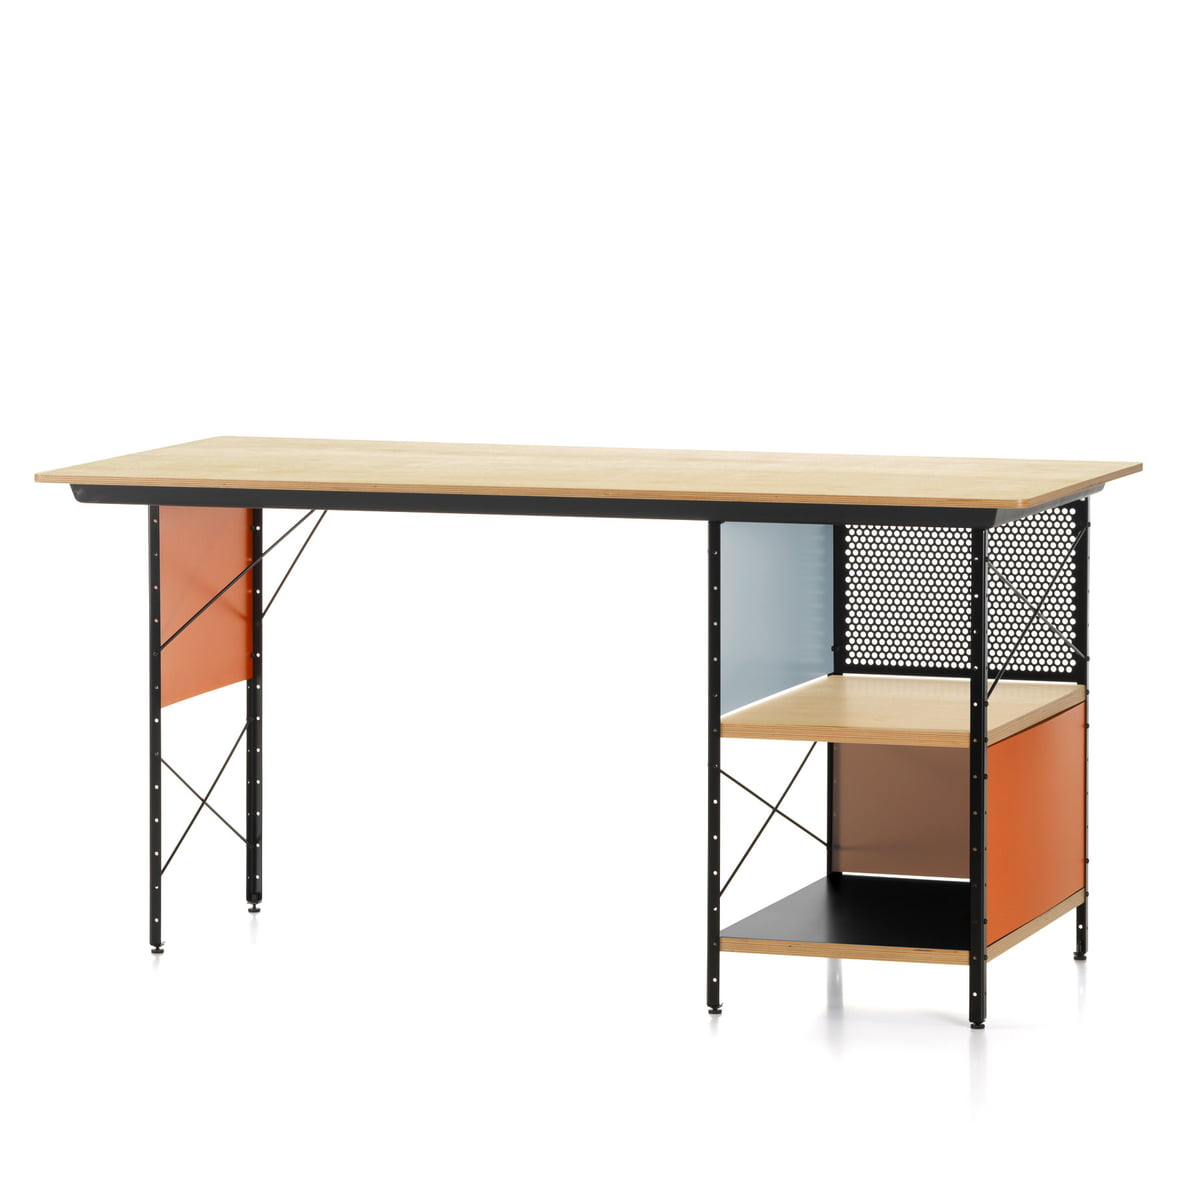 open desks storage vestil desk do b mhequip shop products asp shopdesks